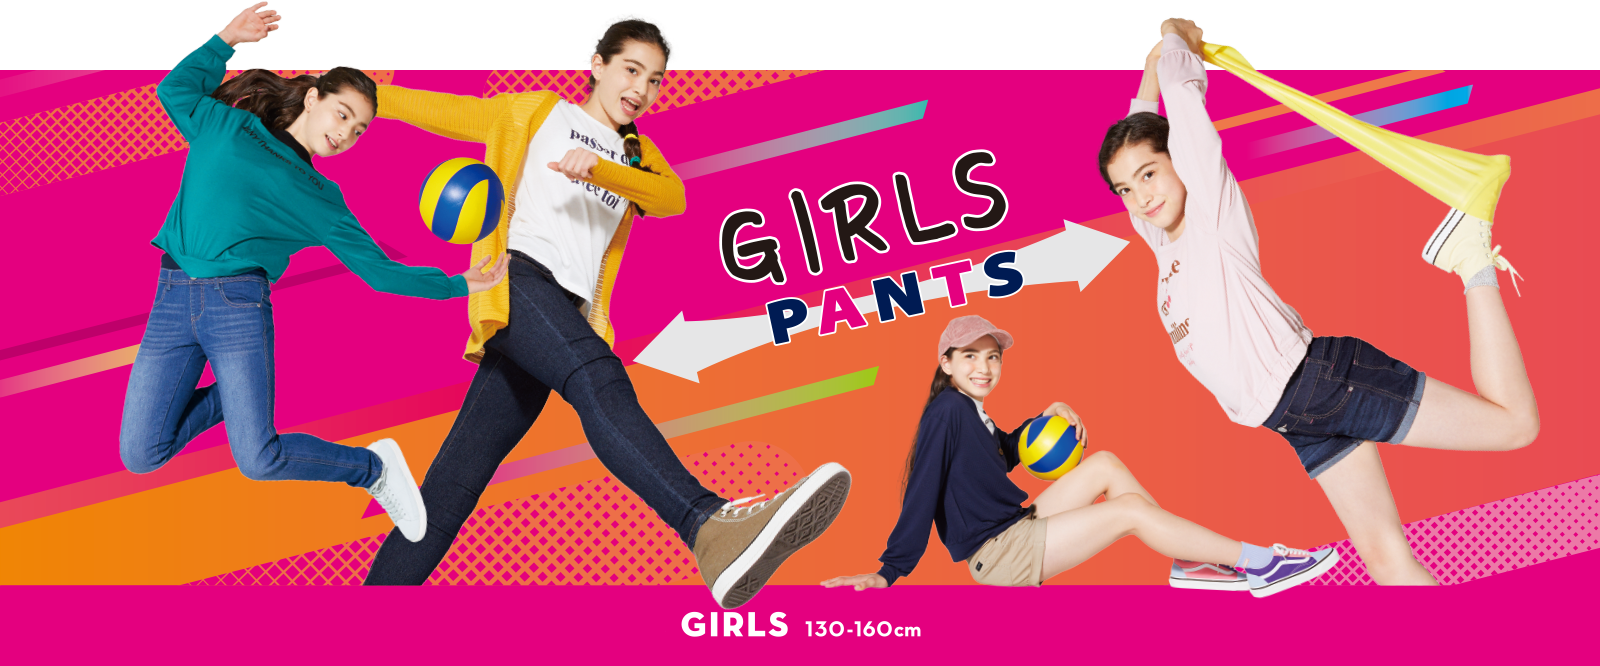 GIRLS PANTS GIRLS 130-160cm